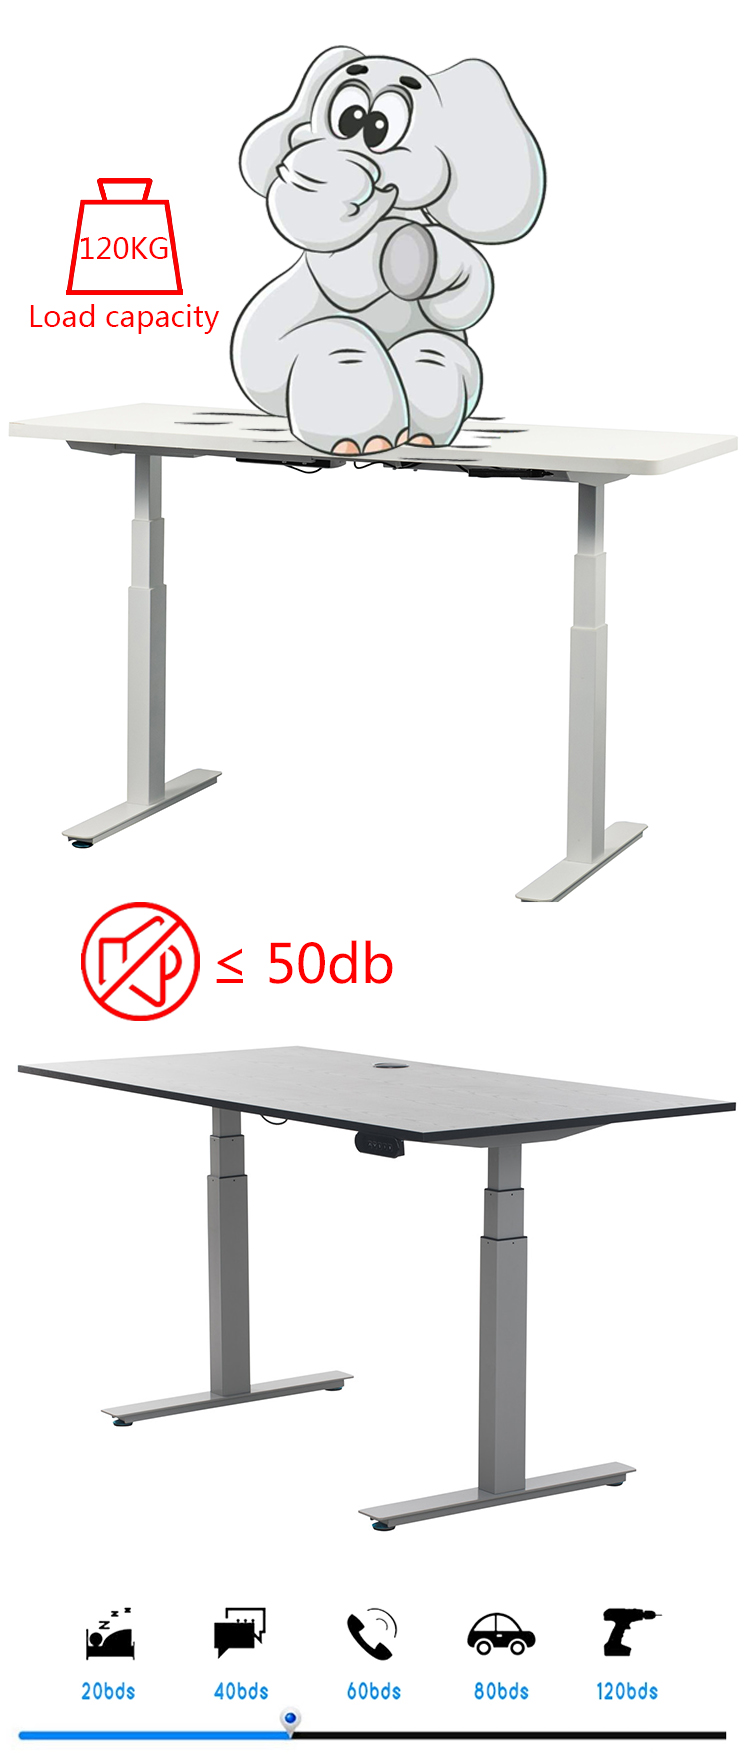 Electric Adjustable Standing Desk,Ergonomic Sit Stand Office Desk